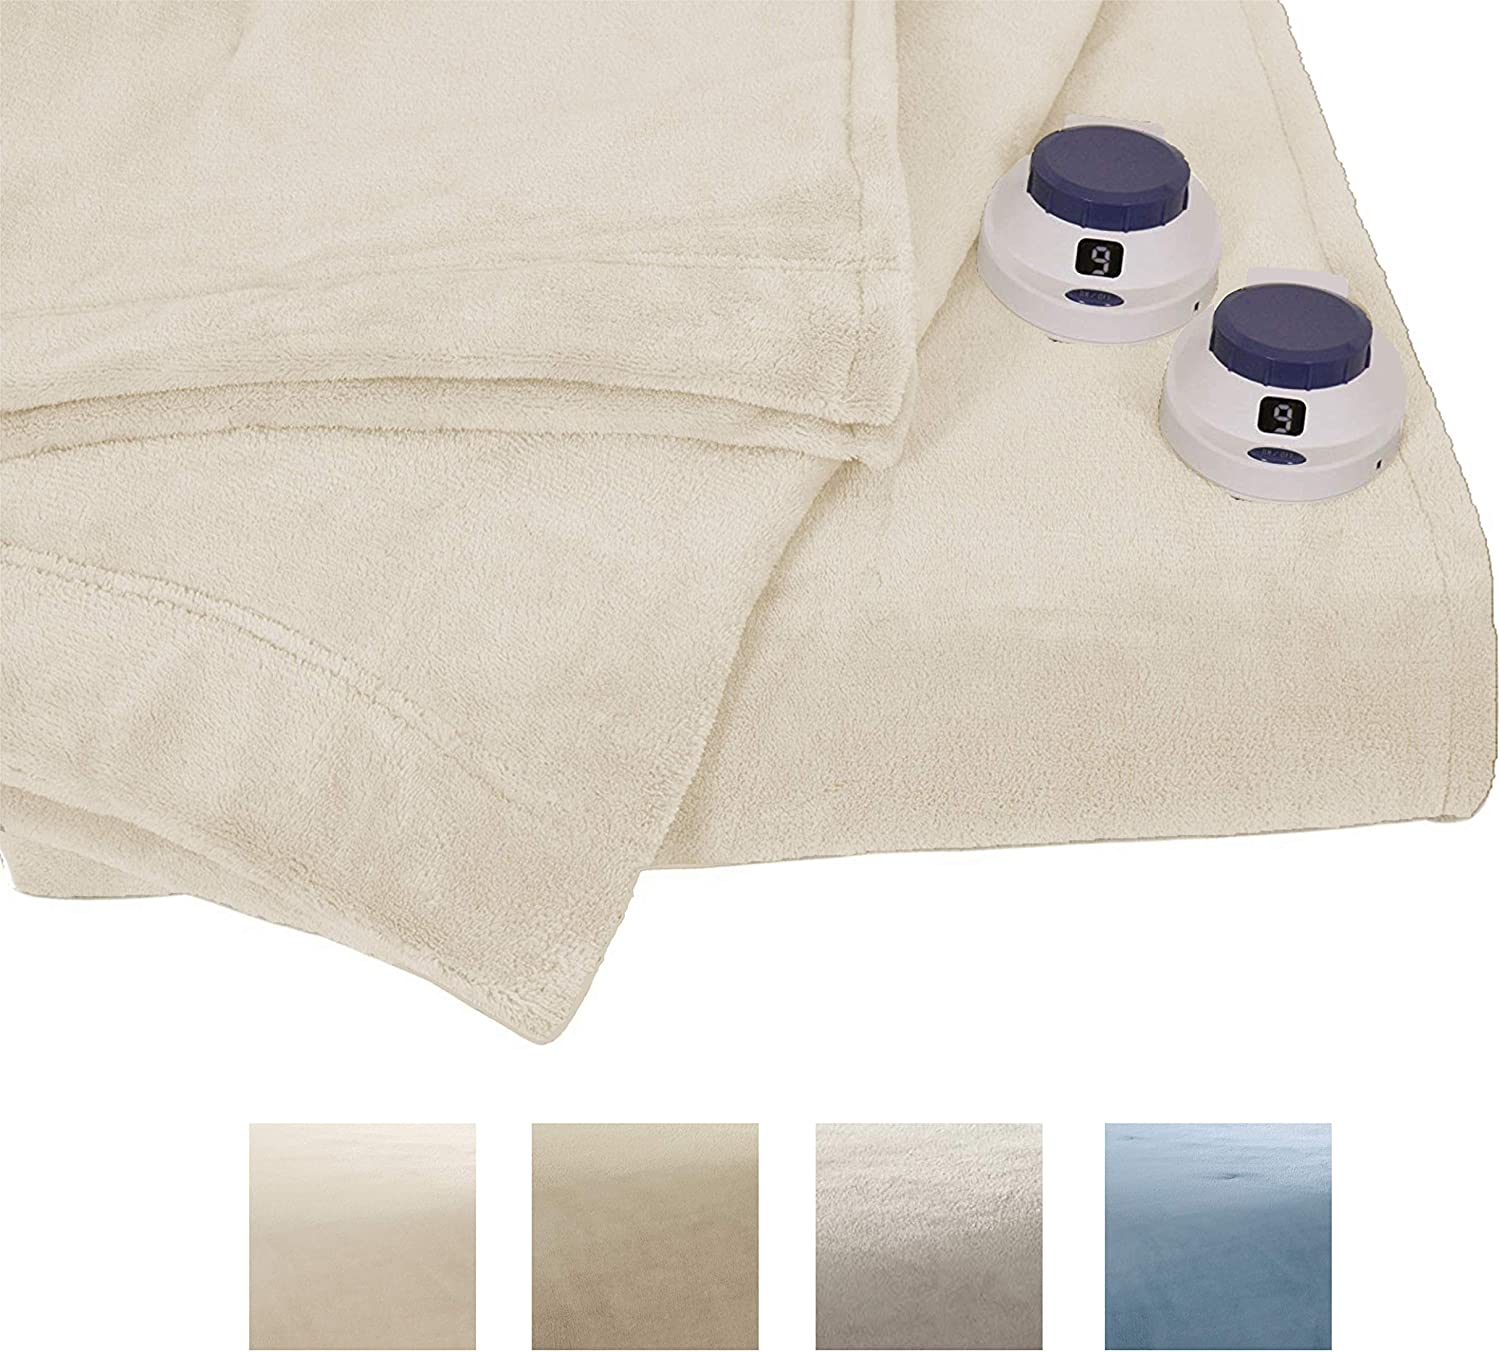 Serta | Luxe Plush Fleece Heated Electric Blanket with Safe & Warm Low-Voltage Technology Twin Cloud